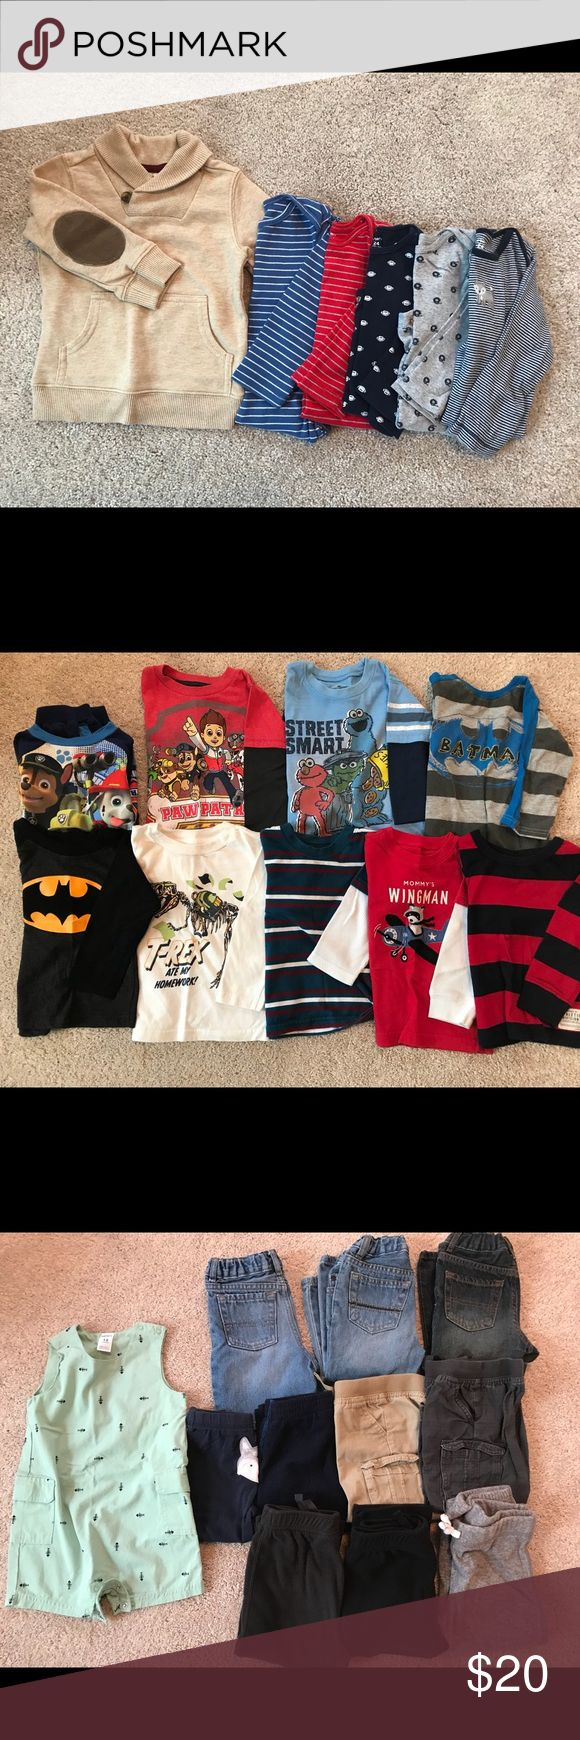 Toddler Boys Clothes- shorts and pants Size: 18-24 Months   26 pieces total: 13 for$20, All 26 for $40  Photo1: All Carter's 24 Months Onesies with snaps, except the first sweater, Brand: Crazy 8, 18-24 Months  Photo 2: All long sleeve shirts. Navy blue Paw Patrol- Sweat Suit Set- long sleeve shirt and pants.  All 18 Months. T-Rex & Wingman shirts are 24 Months.  Photo 3:  Mint Green Romper- 18 Months  Row 1: Jean Shorts, and 2 pair jeans- 18-24 months Row 2:  18&24 month pants Row: 3 Fleece…